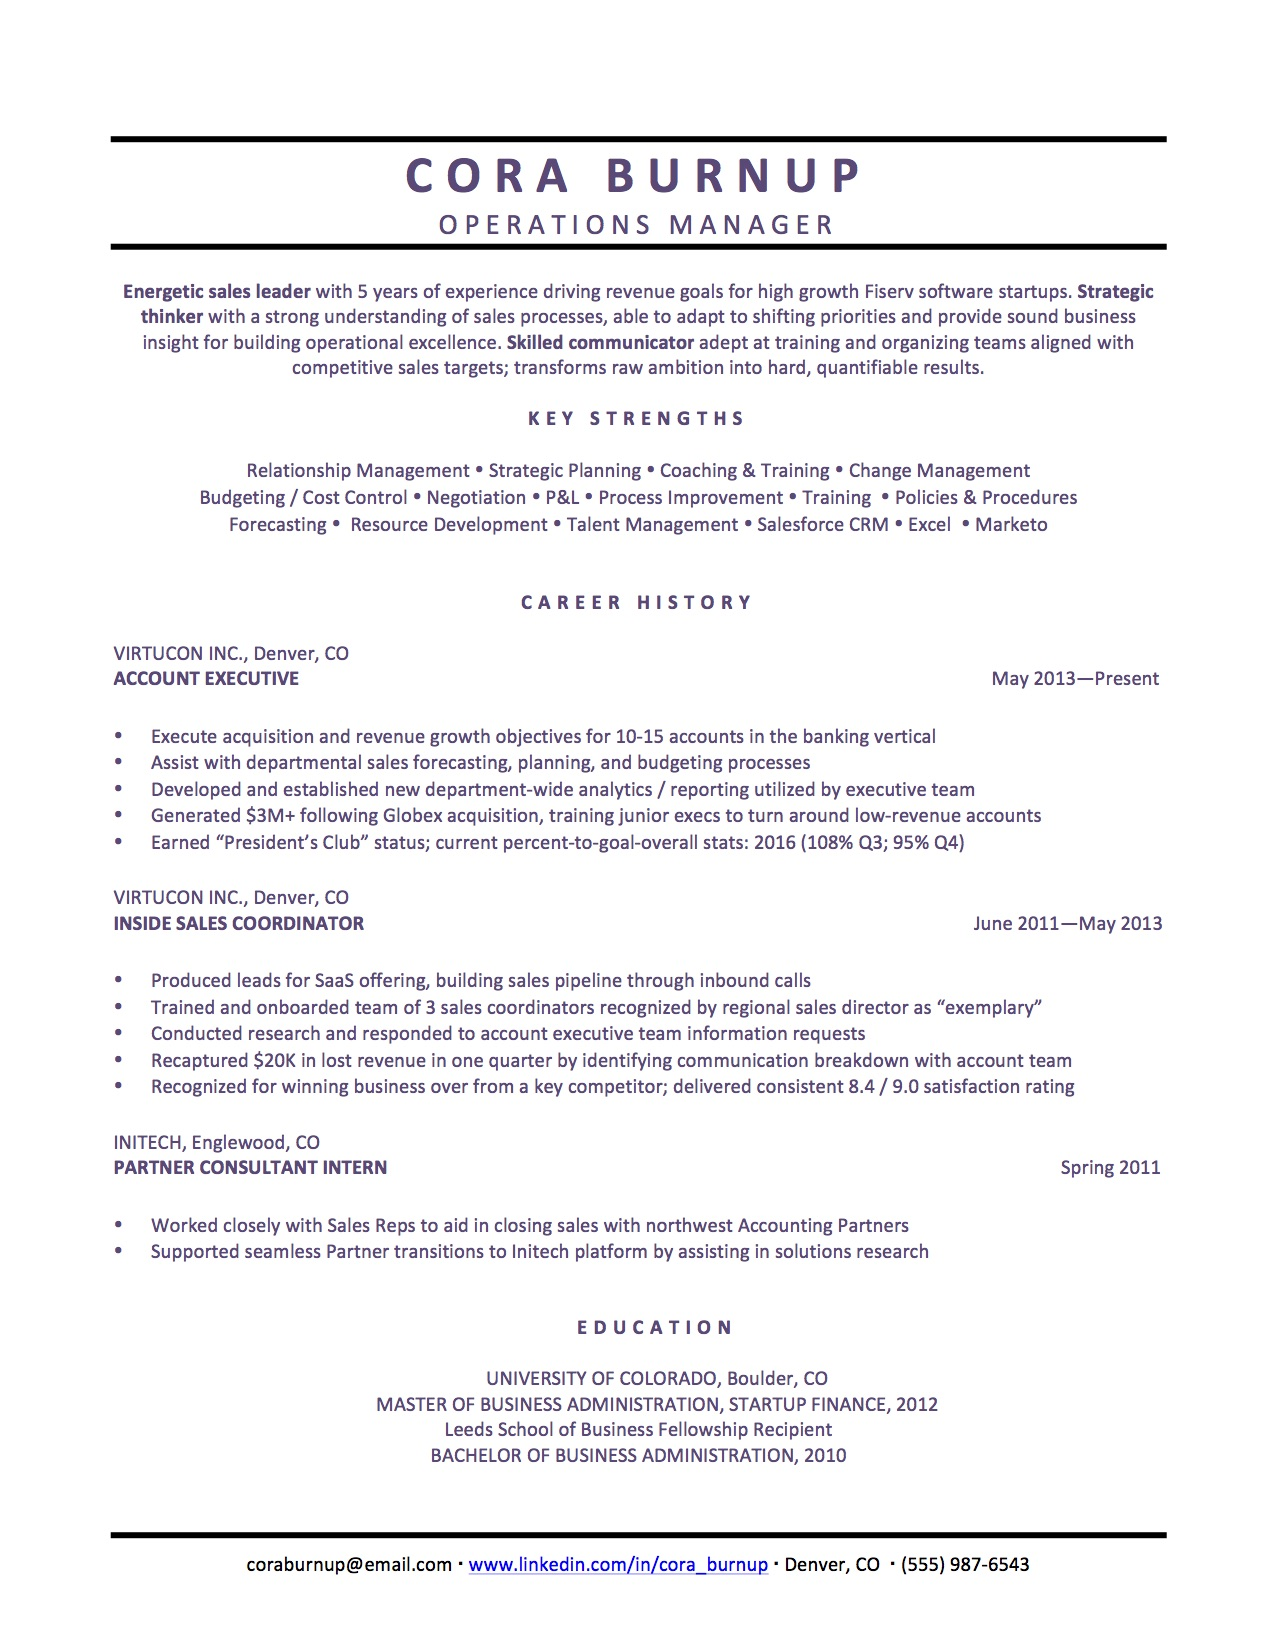 Professional Resume Length How To Spin Your Resume For A Career Change The Muse